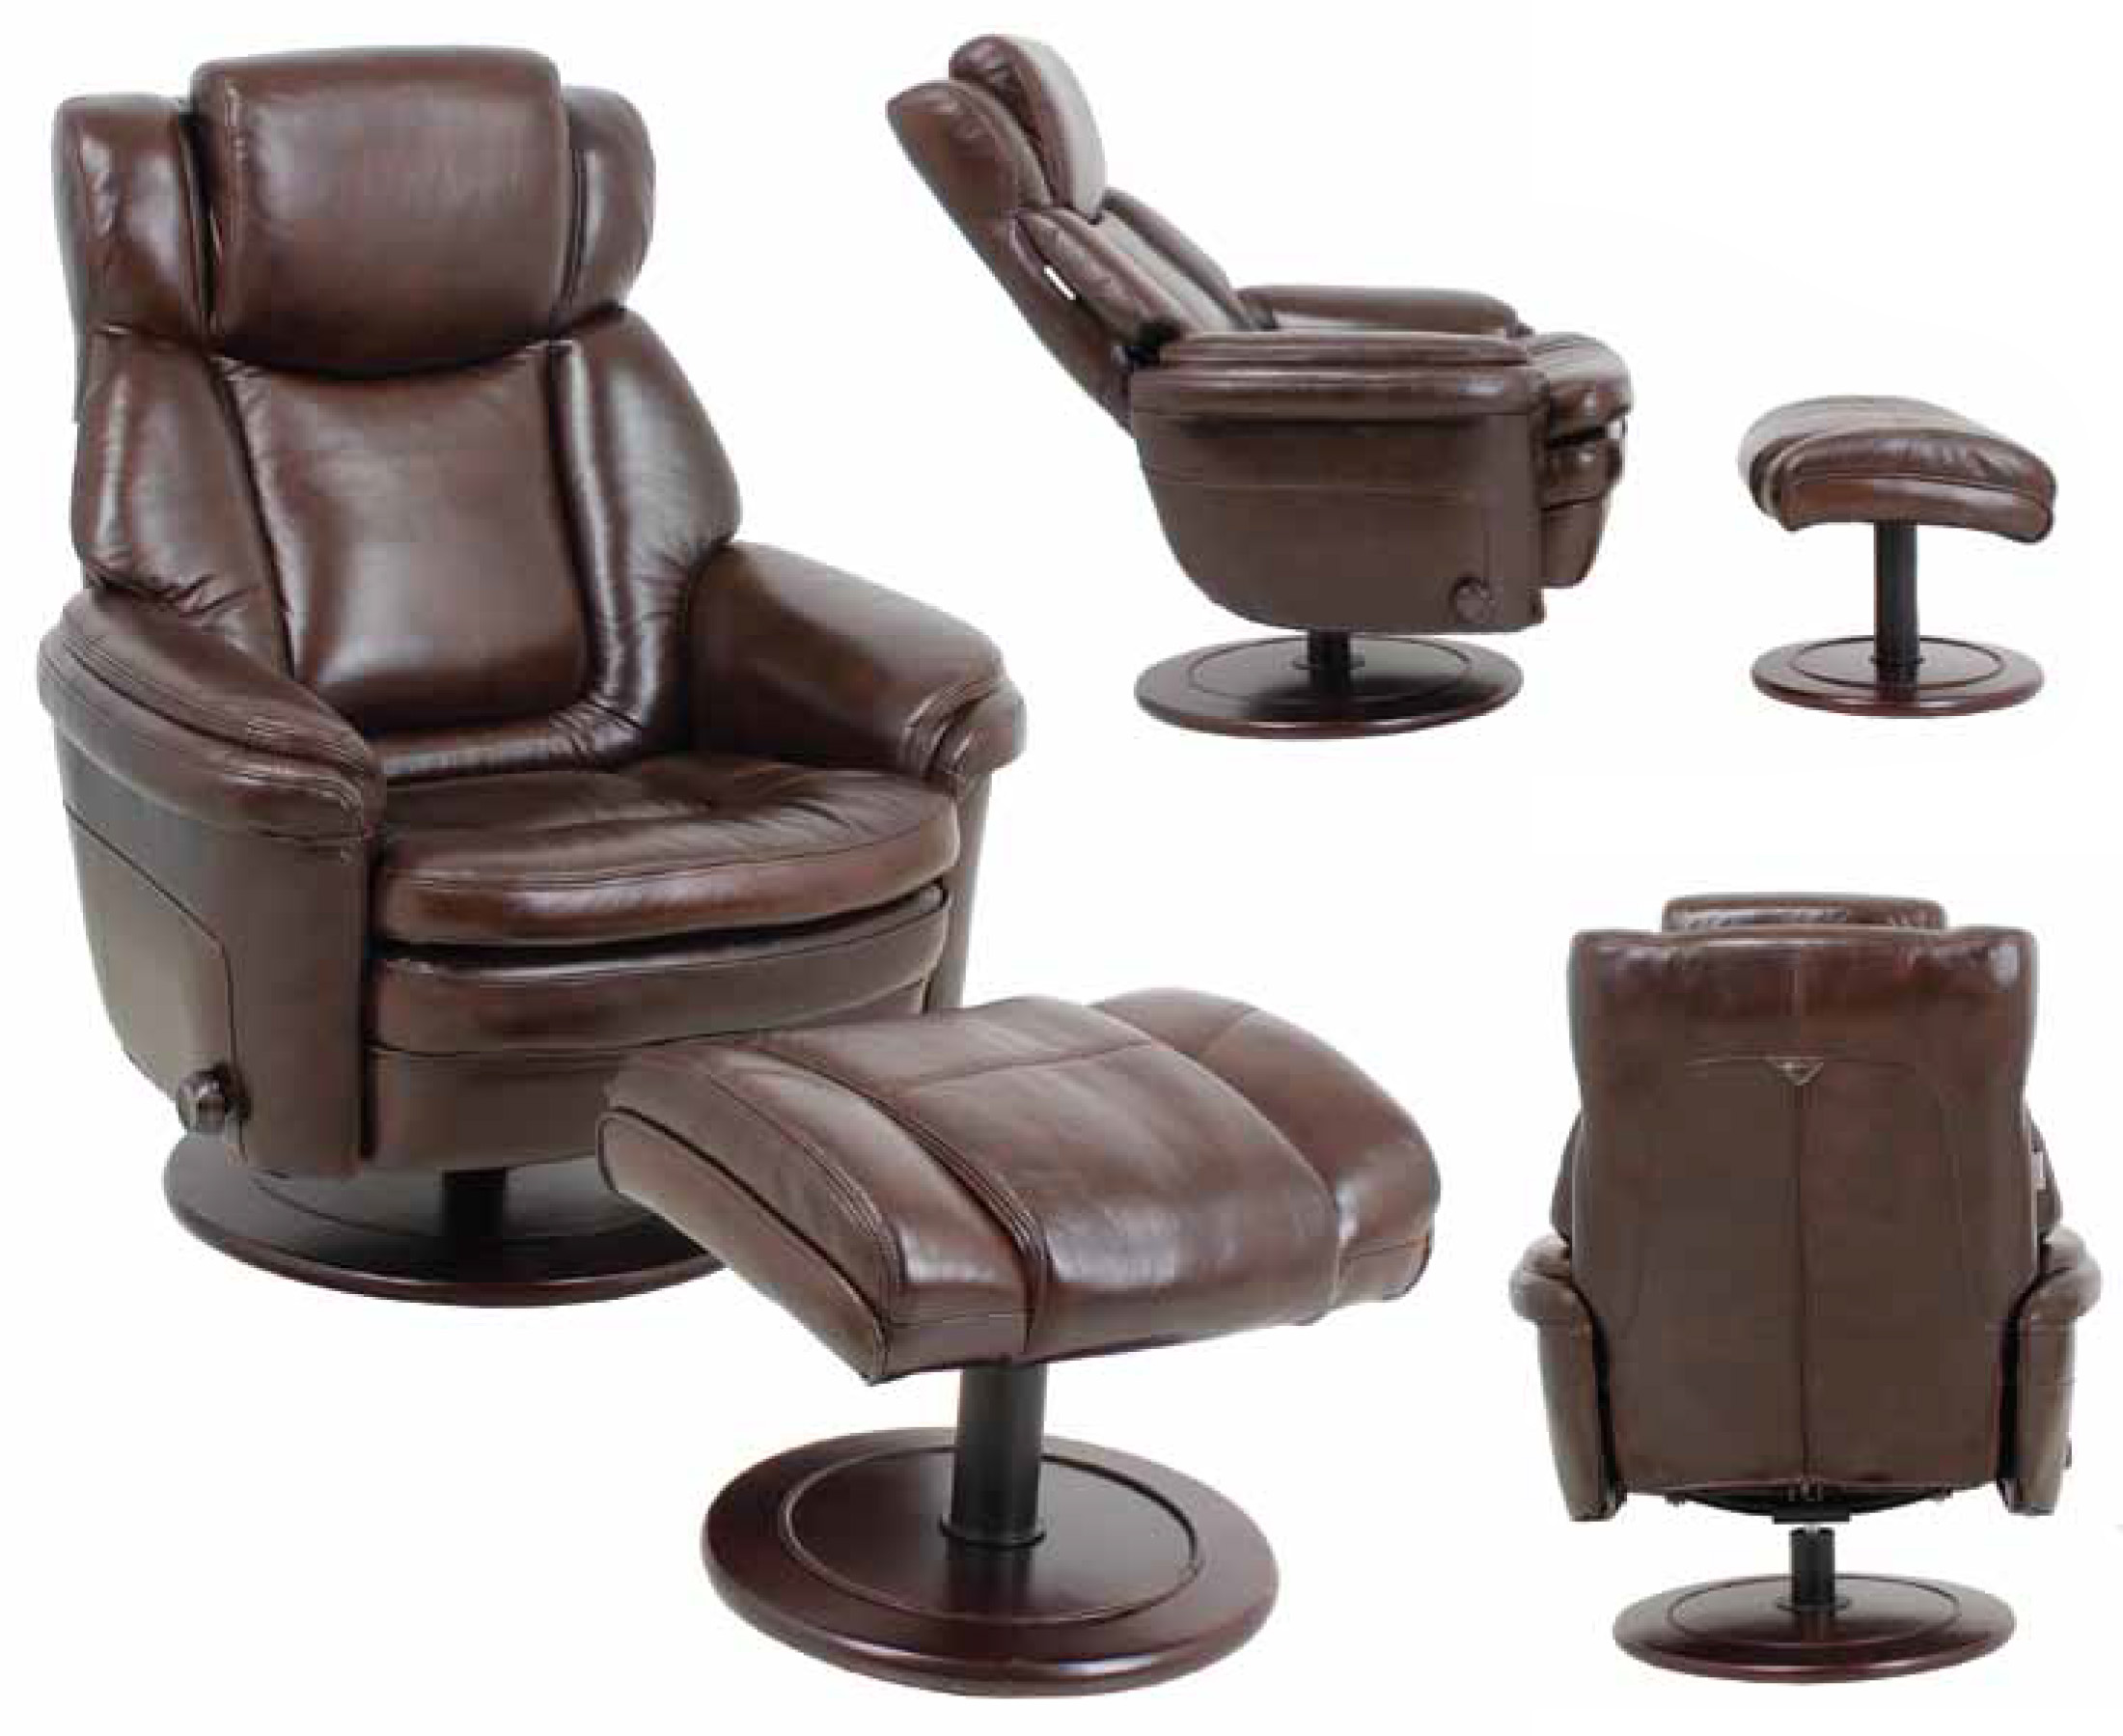 Barcalounger Eclipse Ii Recliner Chair And Ottoman Leather Recliner Chair Furniture Lounge Chair Recliners Chairs Sofas Office Chairs And Other Furniture